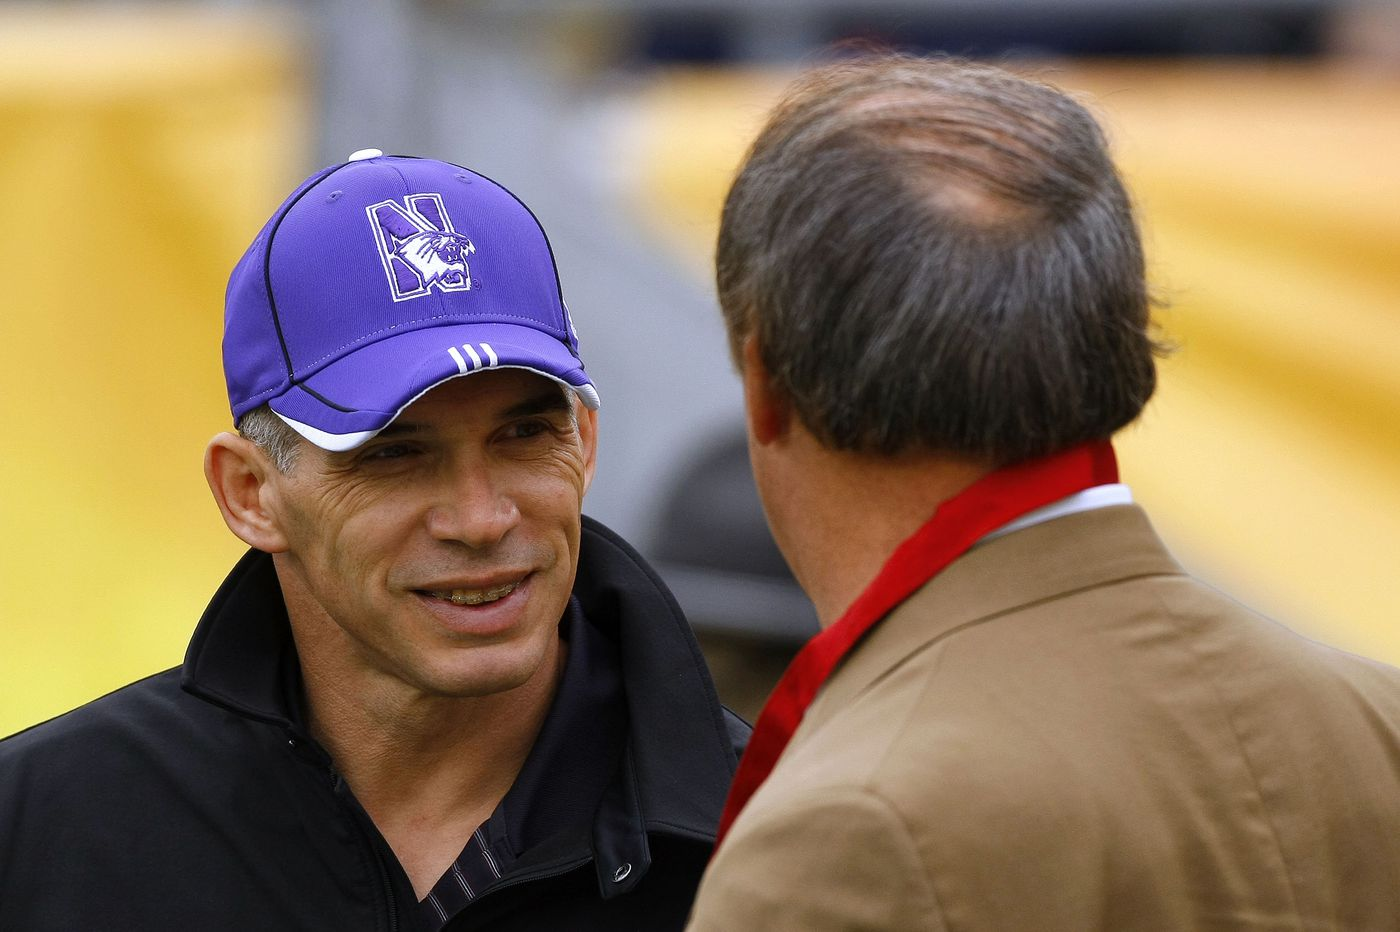 Phillies manager Joe Girardi's devotion to analytics is rooted in a Northwestern University statistics class